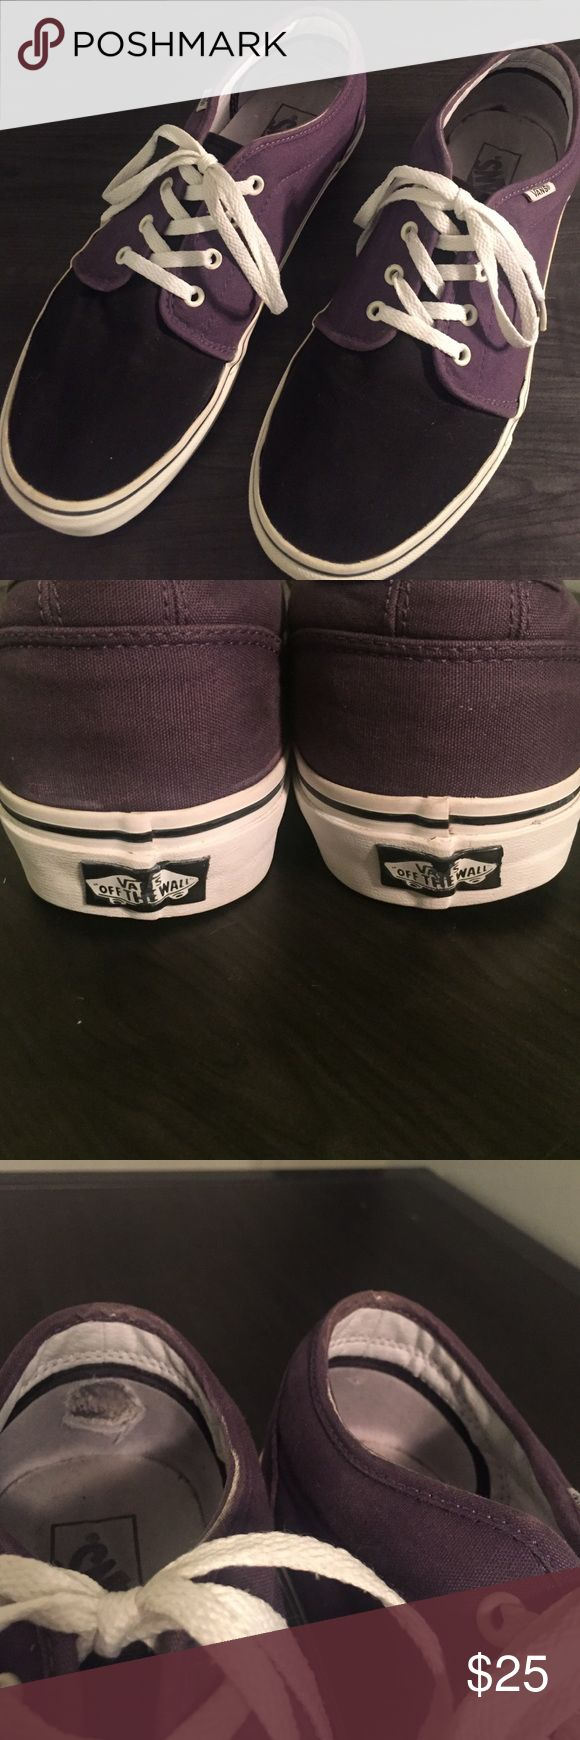 Vans Chukka Low (Black and Purple Two-Toned) Vans Chukka Low (Black and Purple Two-Toned) Guys Size 12. Only worn a handful of times. Outside still in great condition! Right inside heel has some rubbing. Bottom of soles has ZERO wearing! ☺️ I'll consider reasonable offers. Vans Shoes